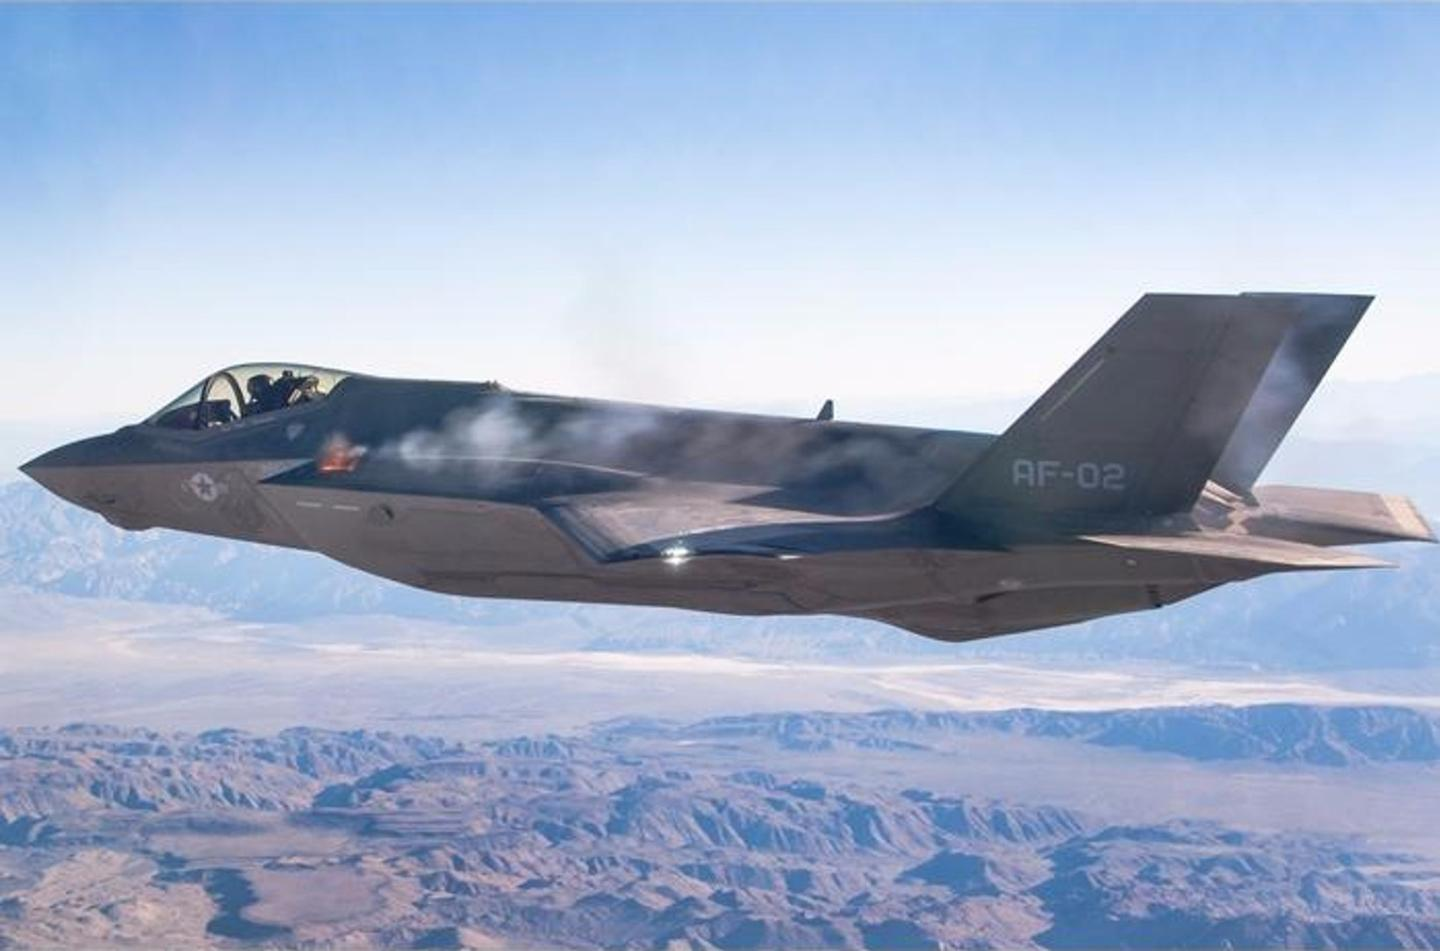 The F-35A Lightning II completed the first three airborne gunfire bursts from its internal Gun Airborne Unit (GAU)-22/A 25mm Gatling gun system